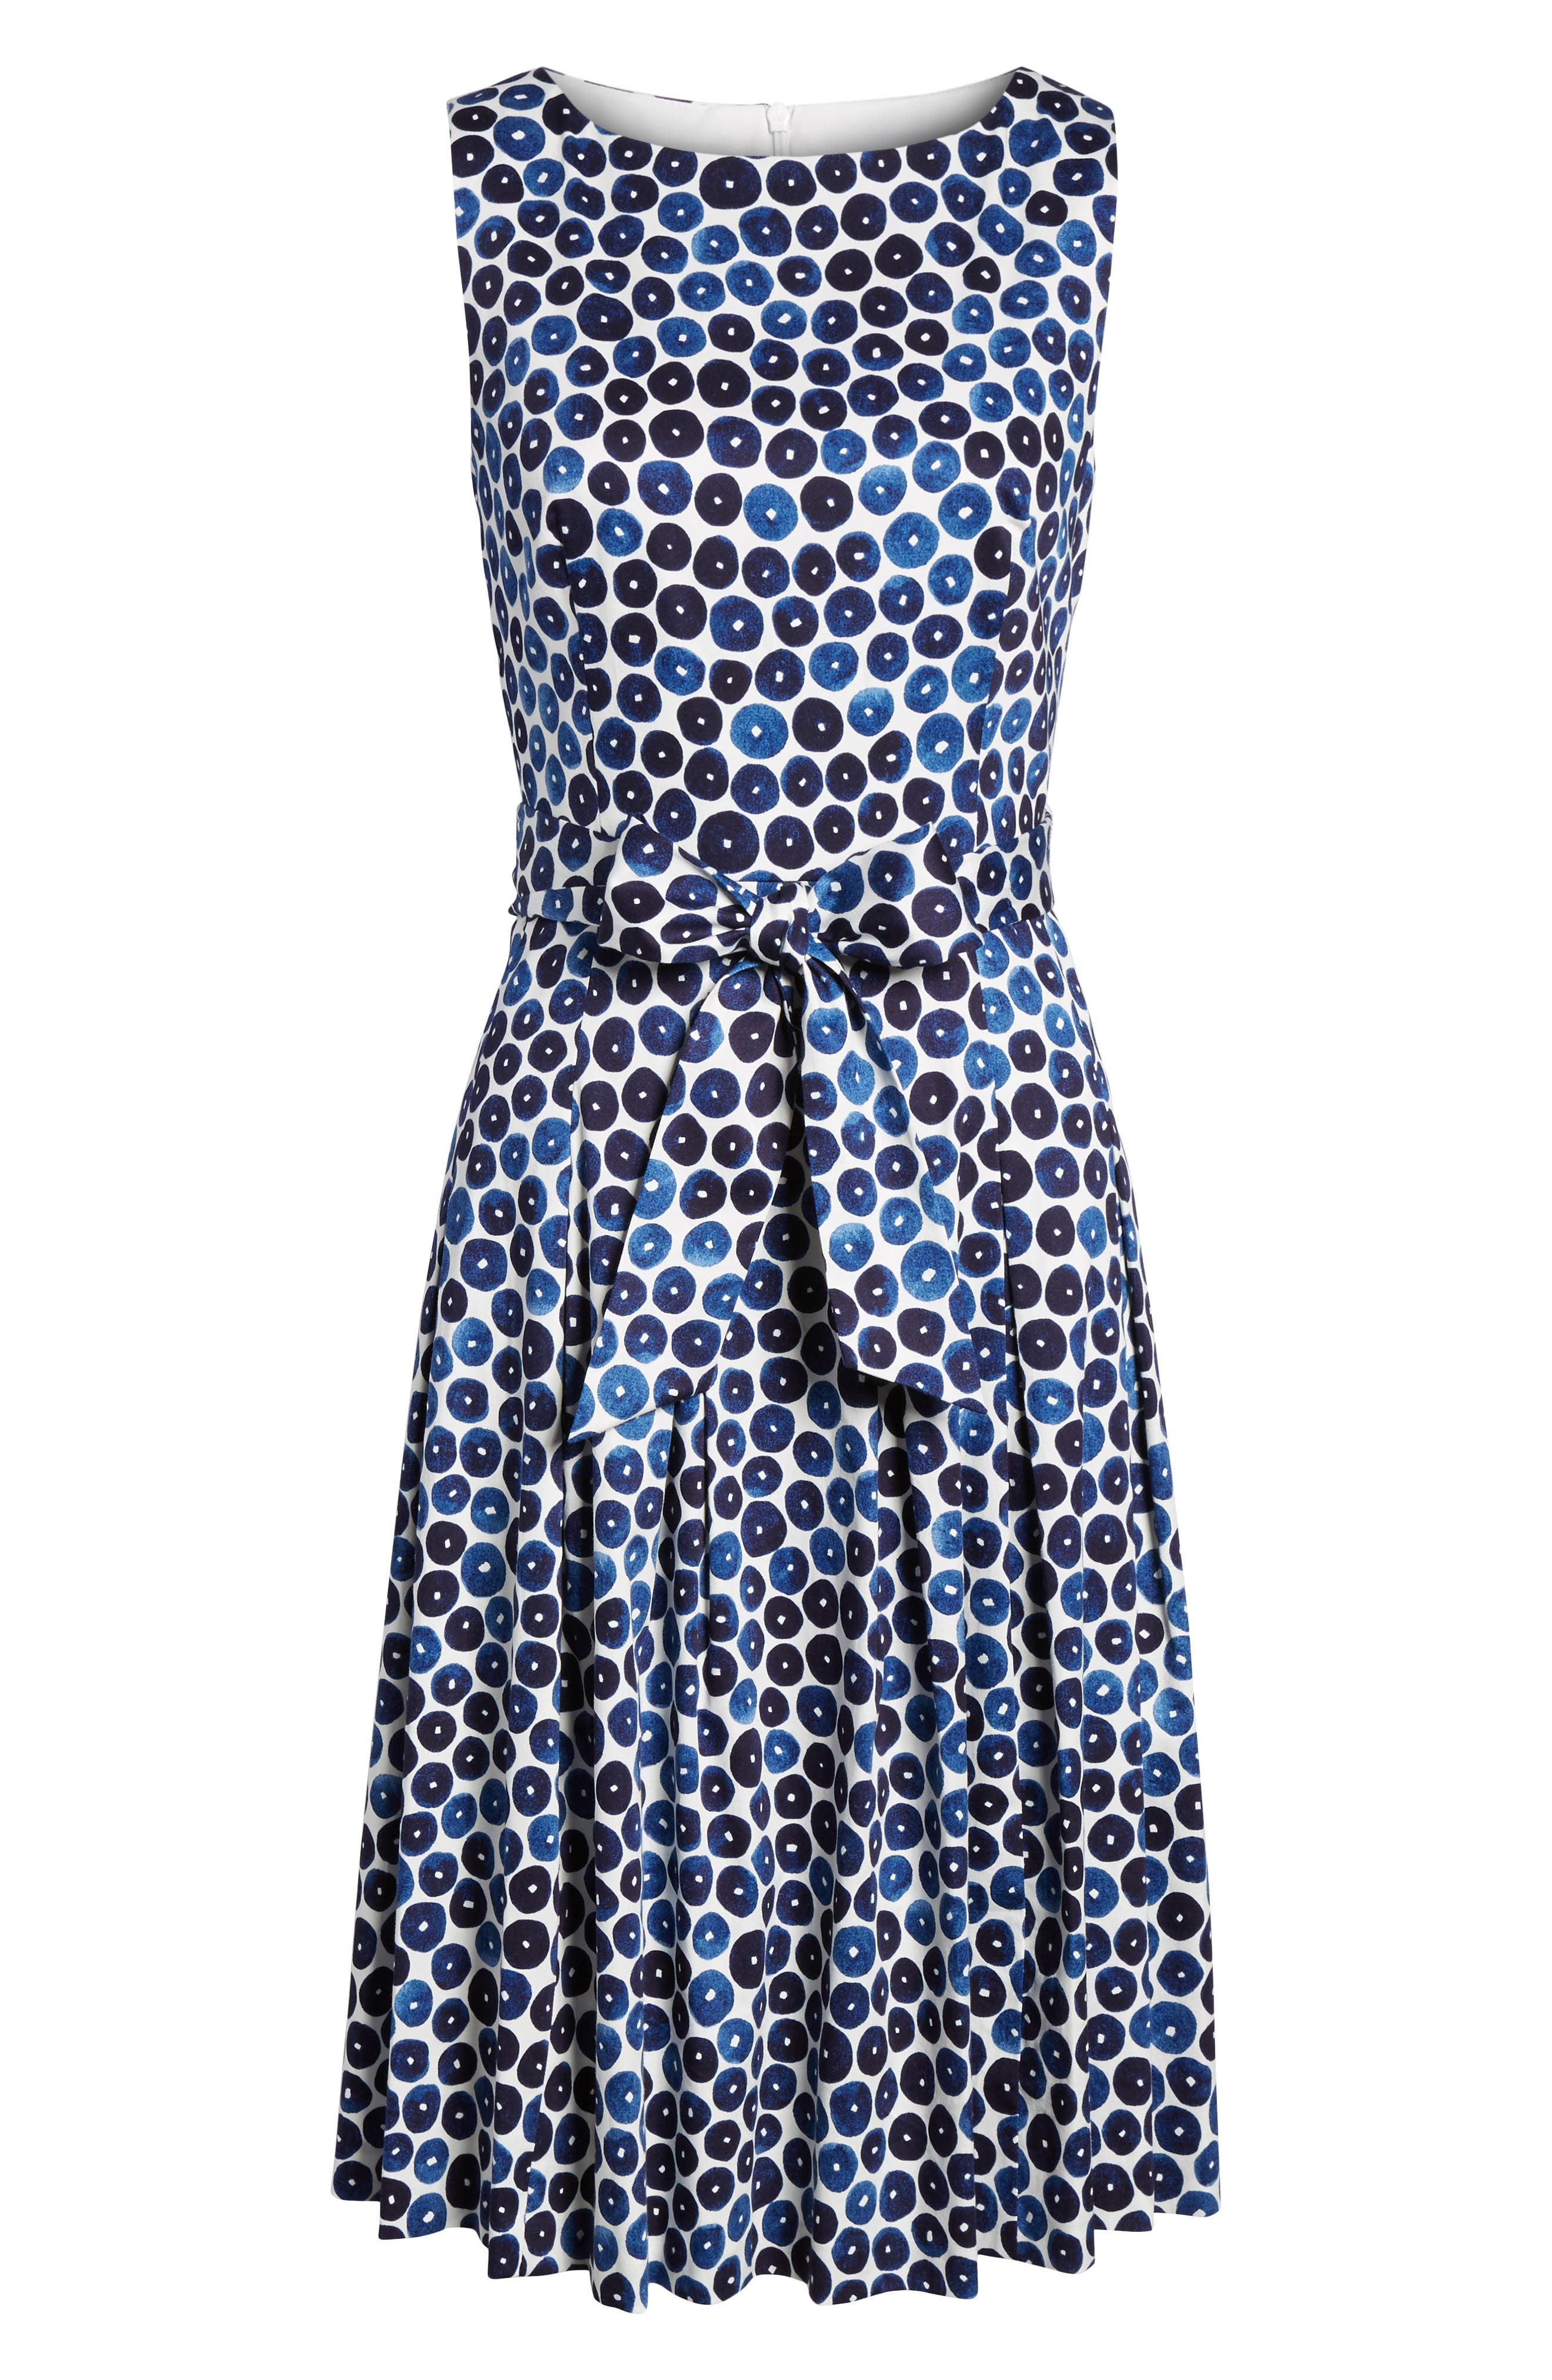 Neroli Print Cotton Sateen Dress,                             Alternate thumbnail 6, color,                             400